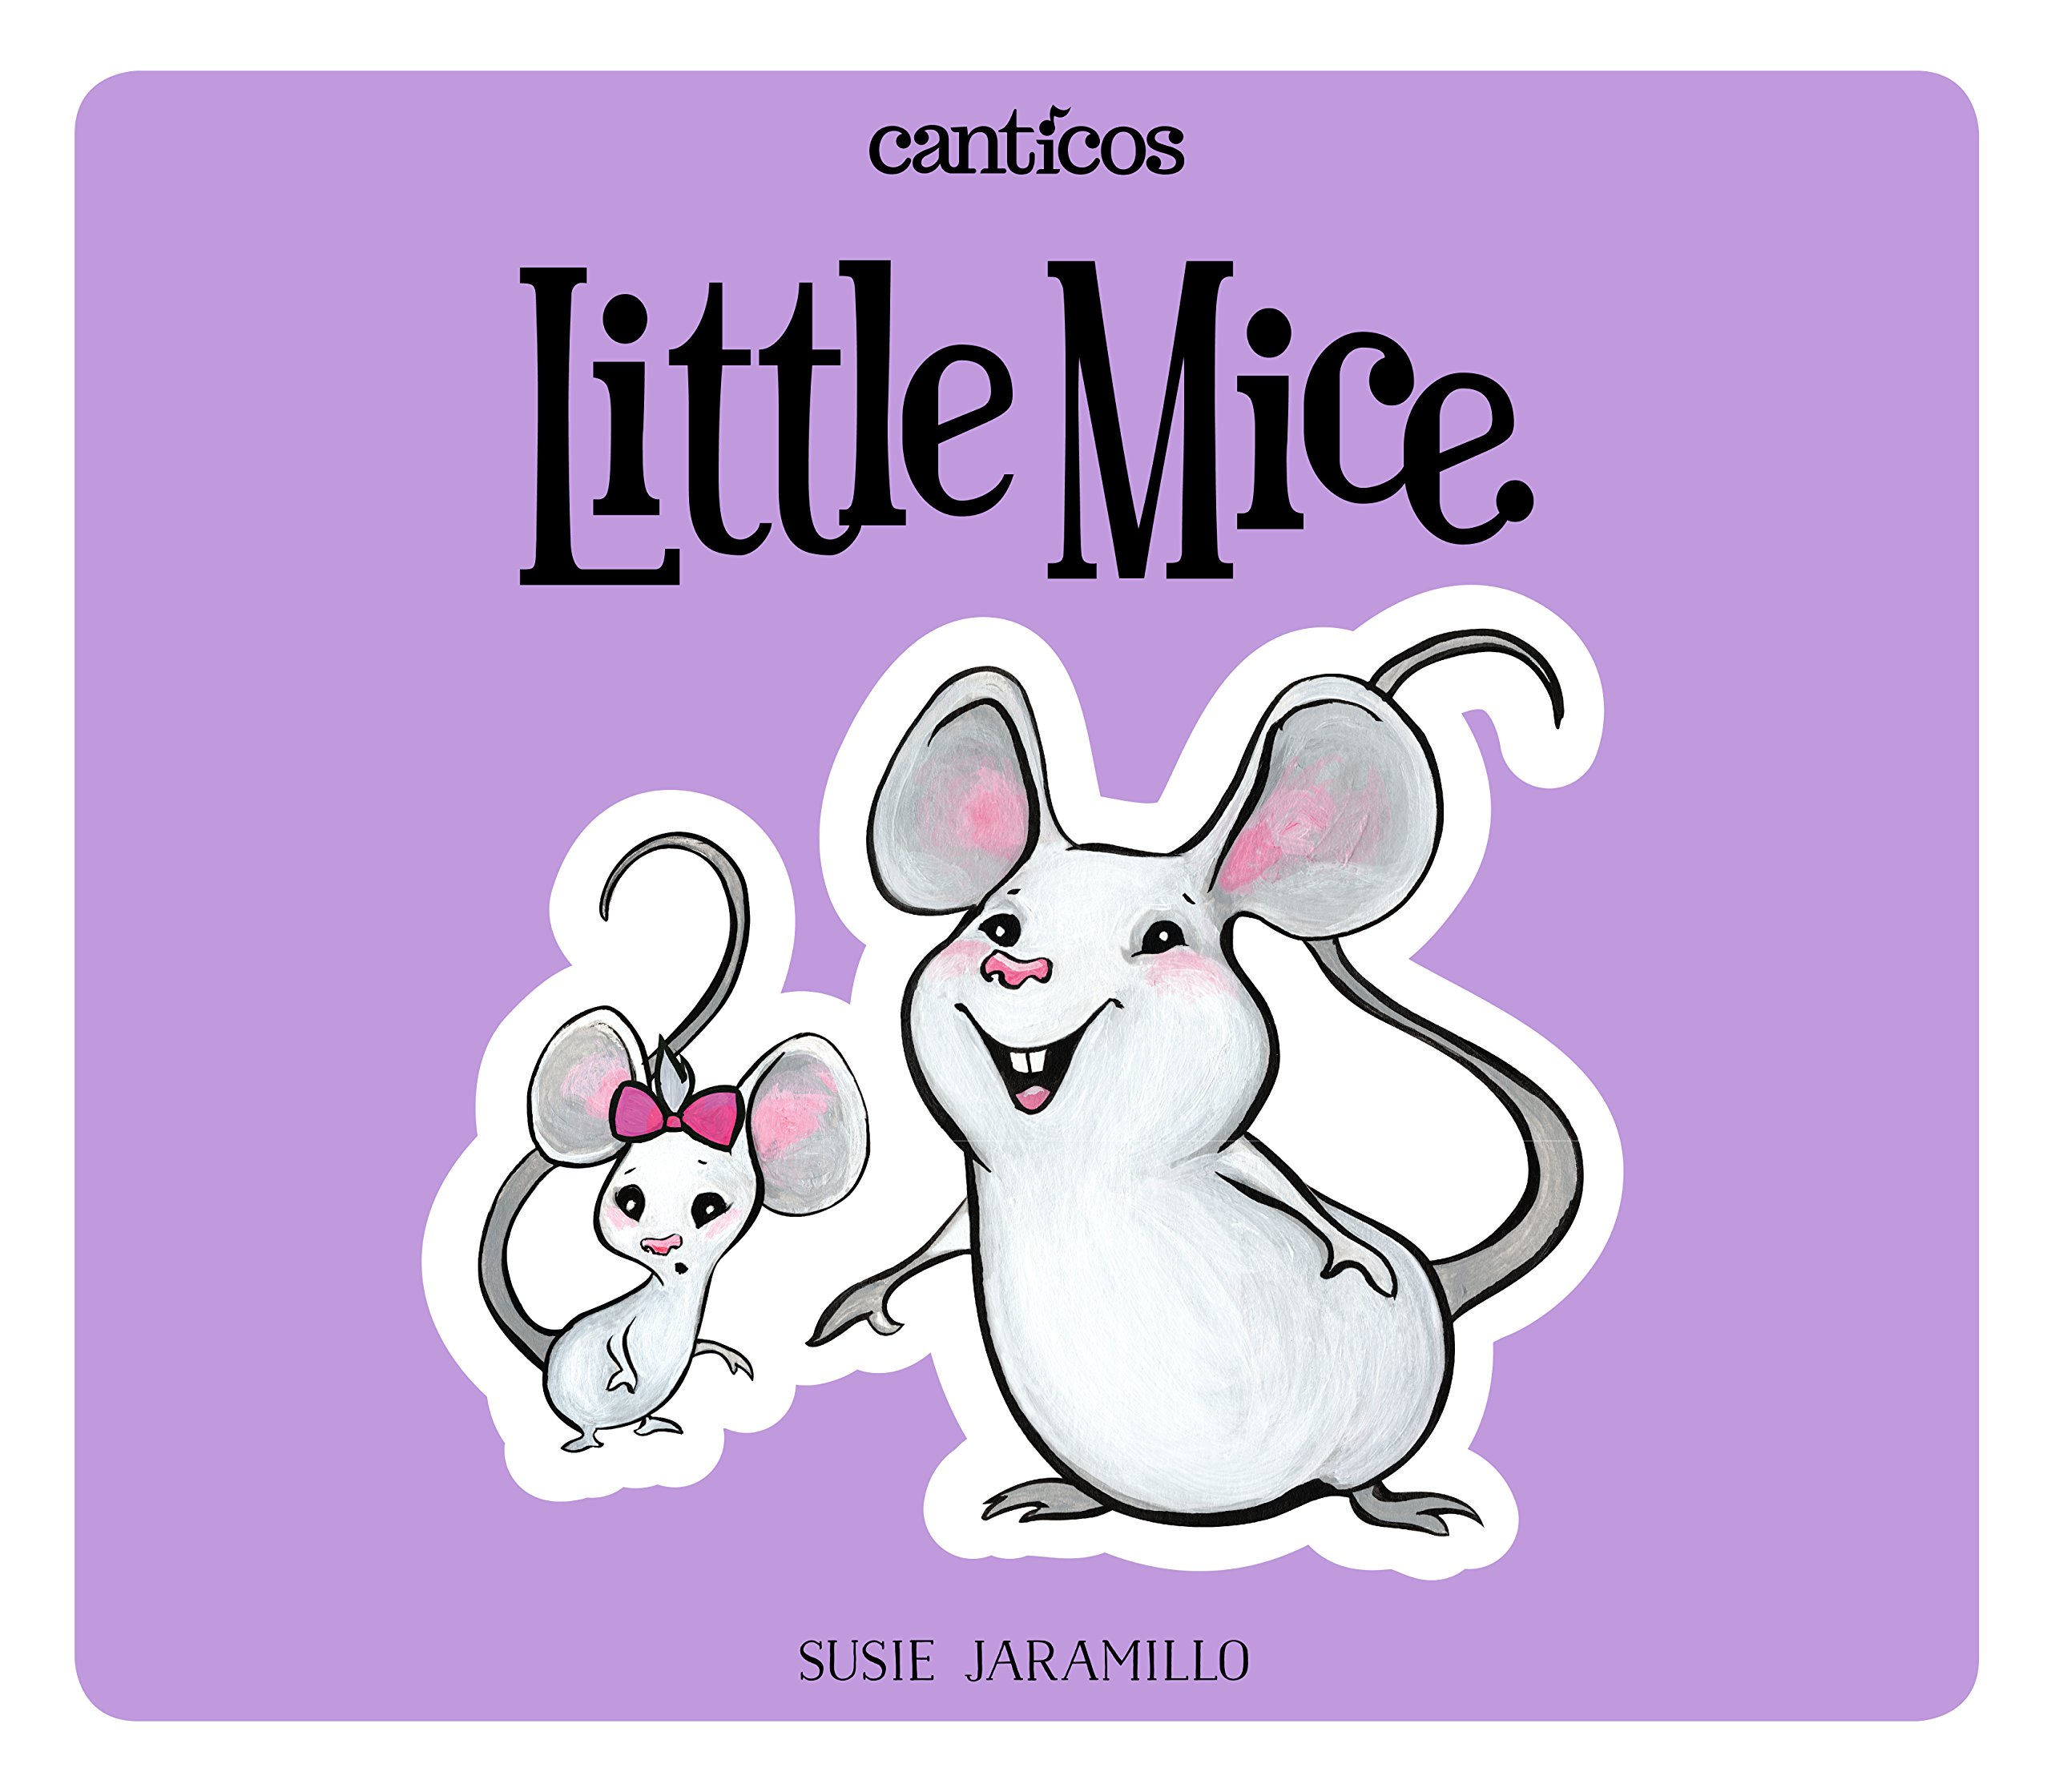 Little Mice/Ratoncitos